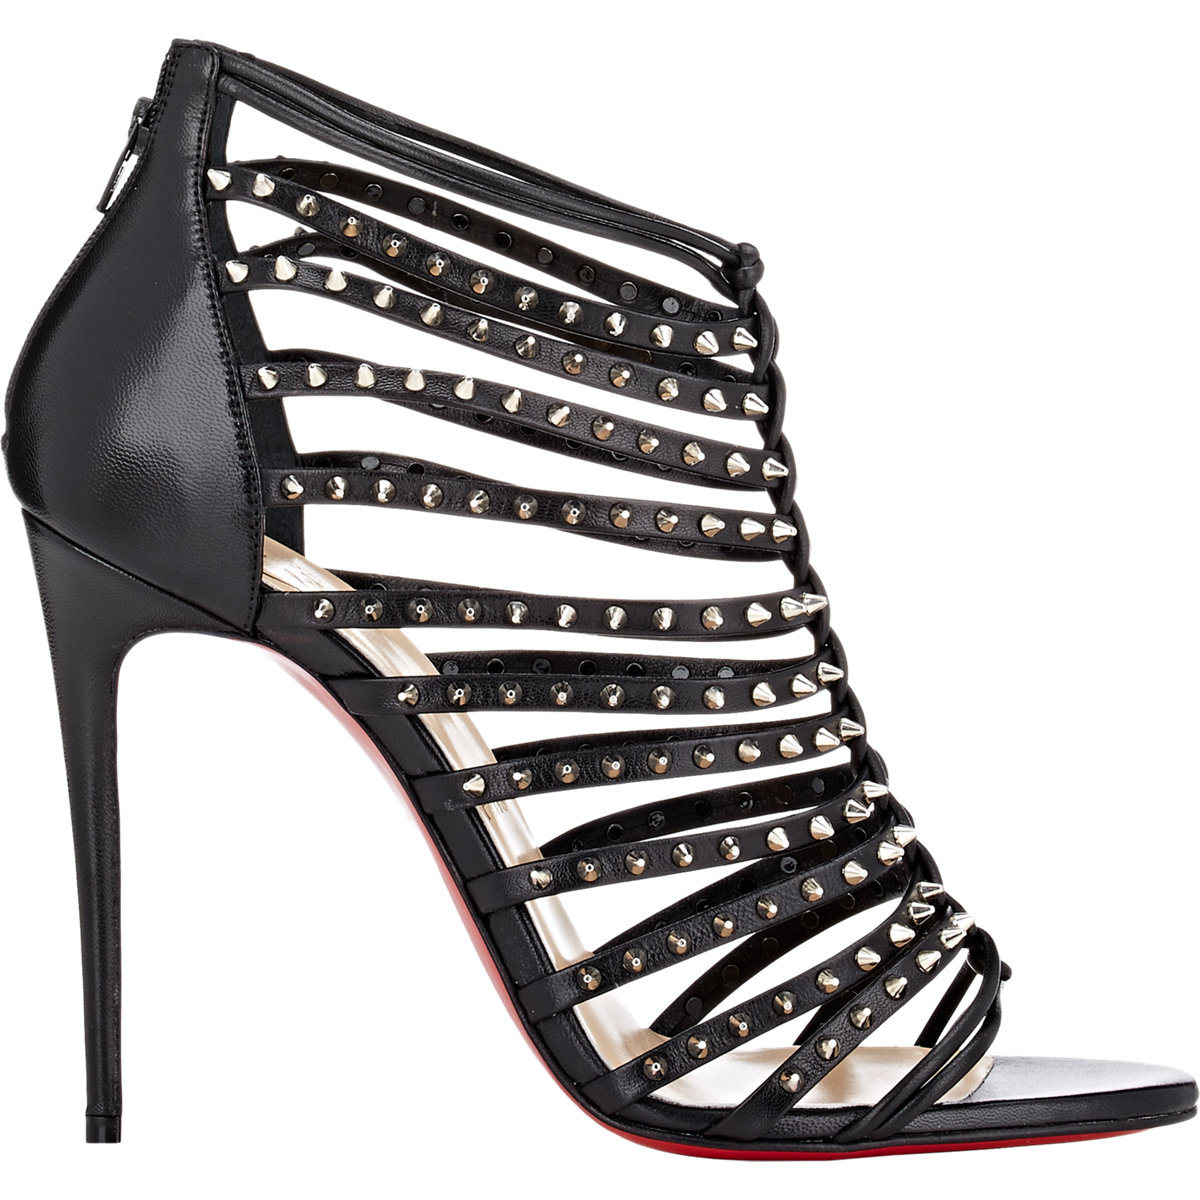 buy replica shoes online - christian louboutin wedges Black leather silver-tone hardware ...